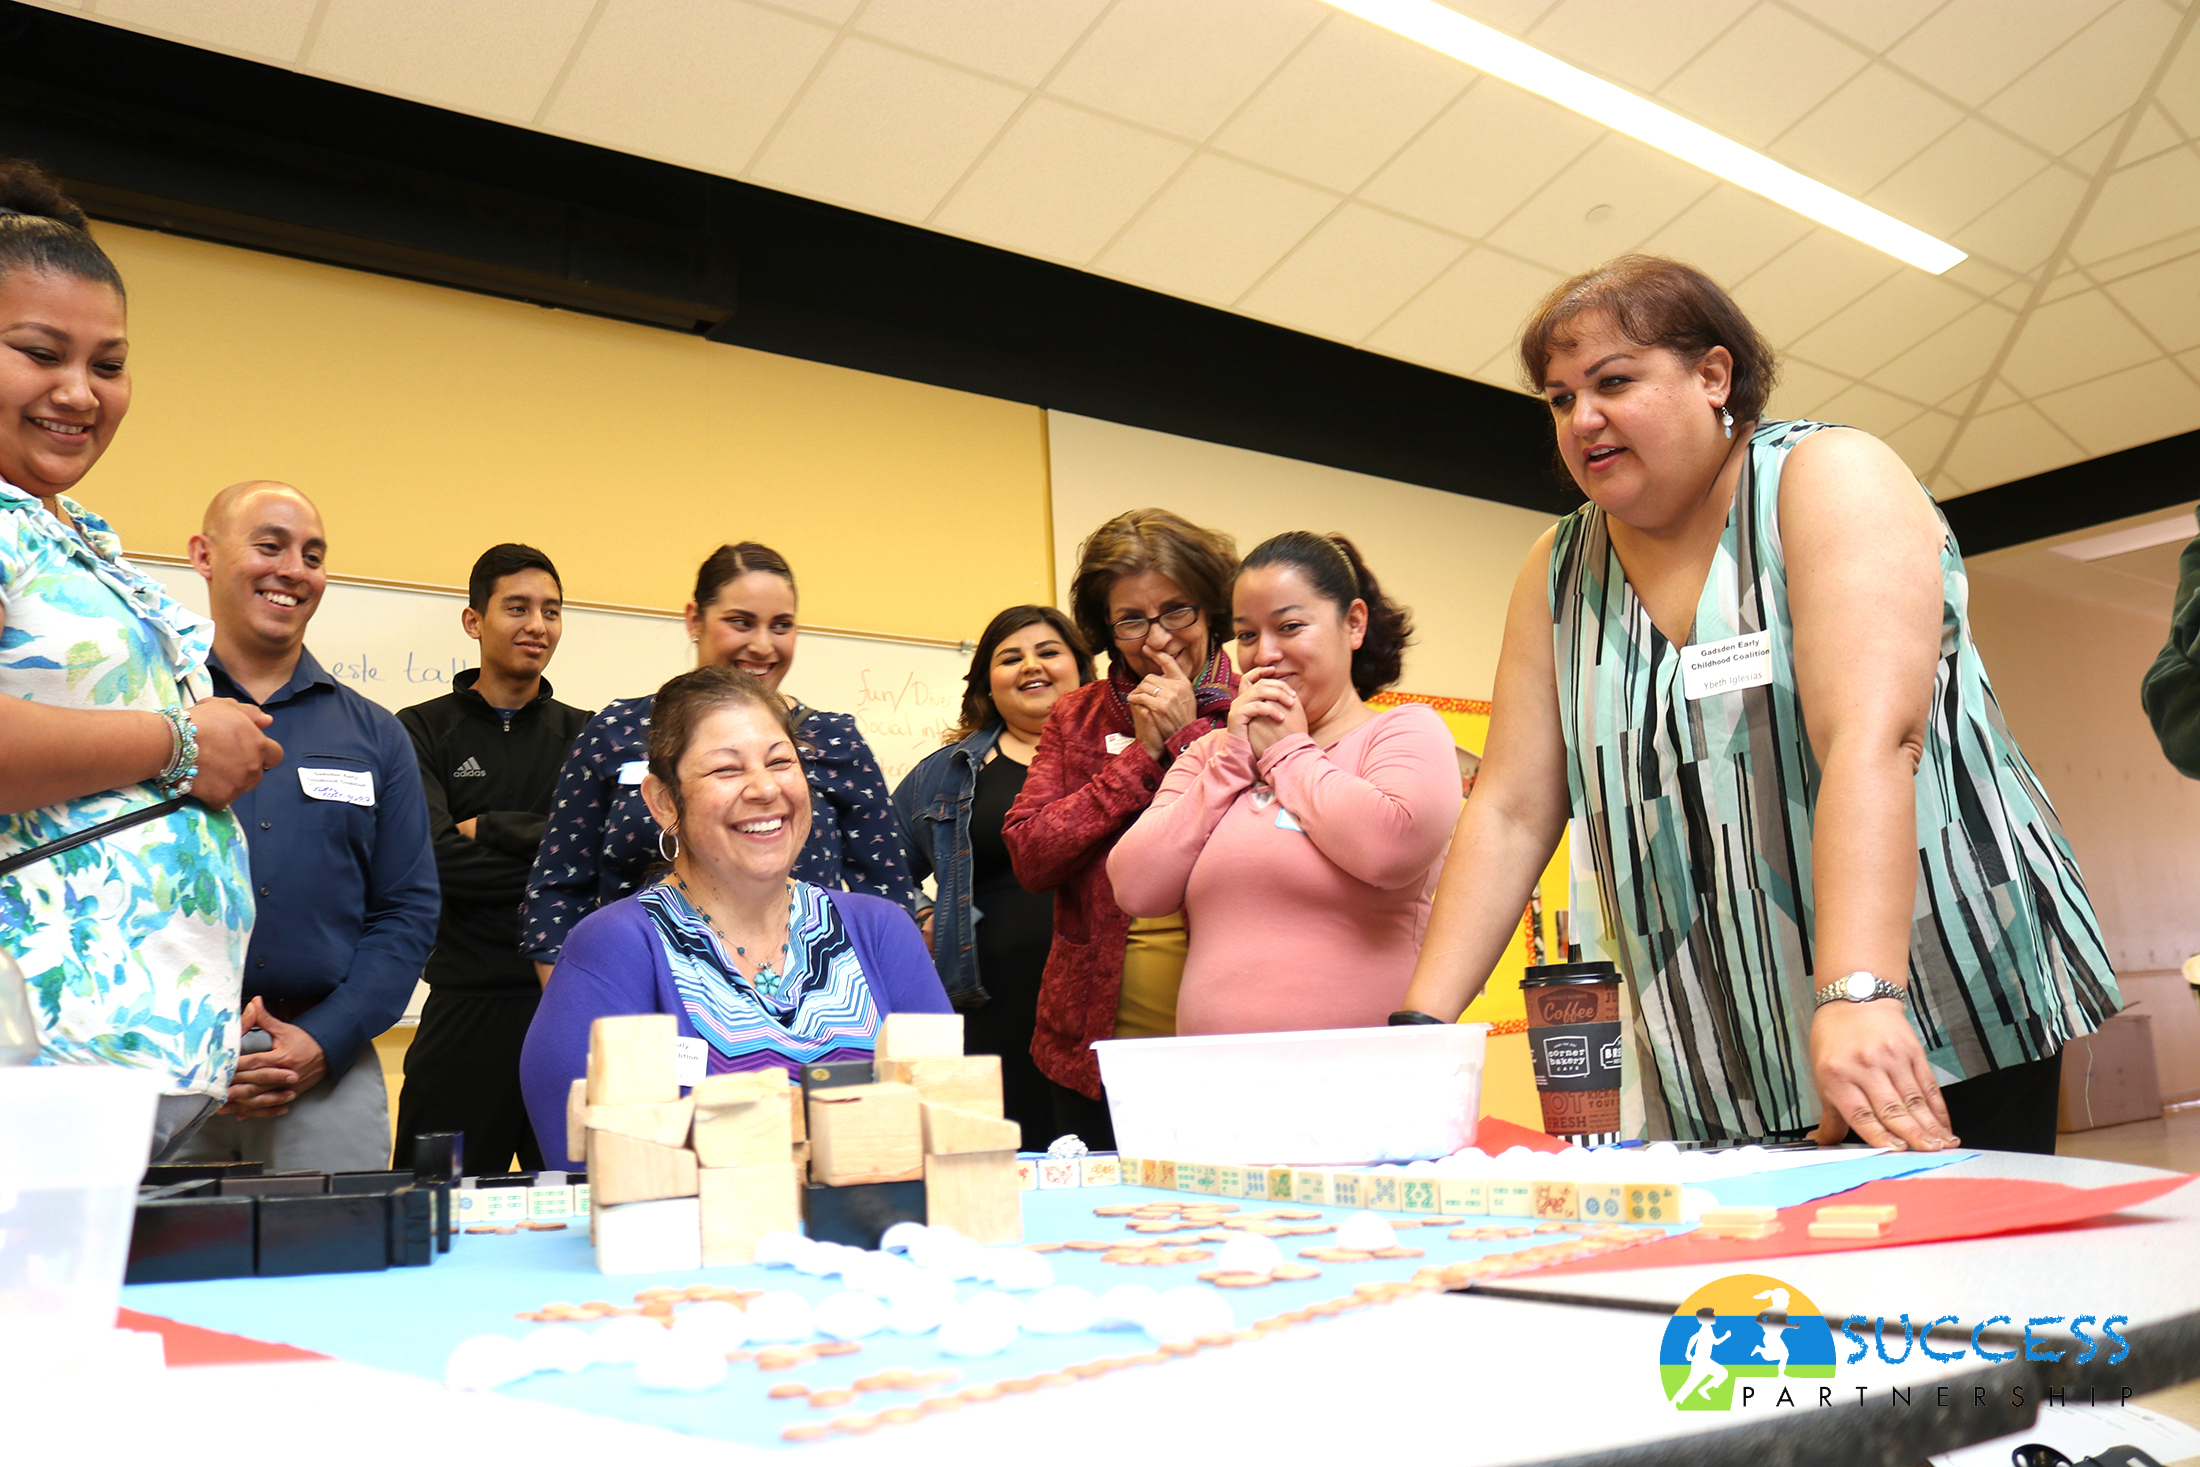 Chaparral Success Partnership Group Playing Board Game